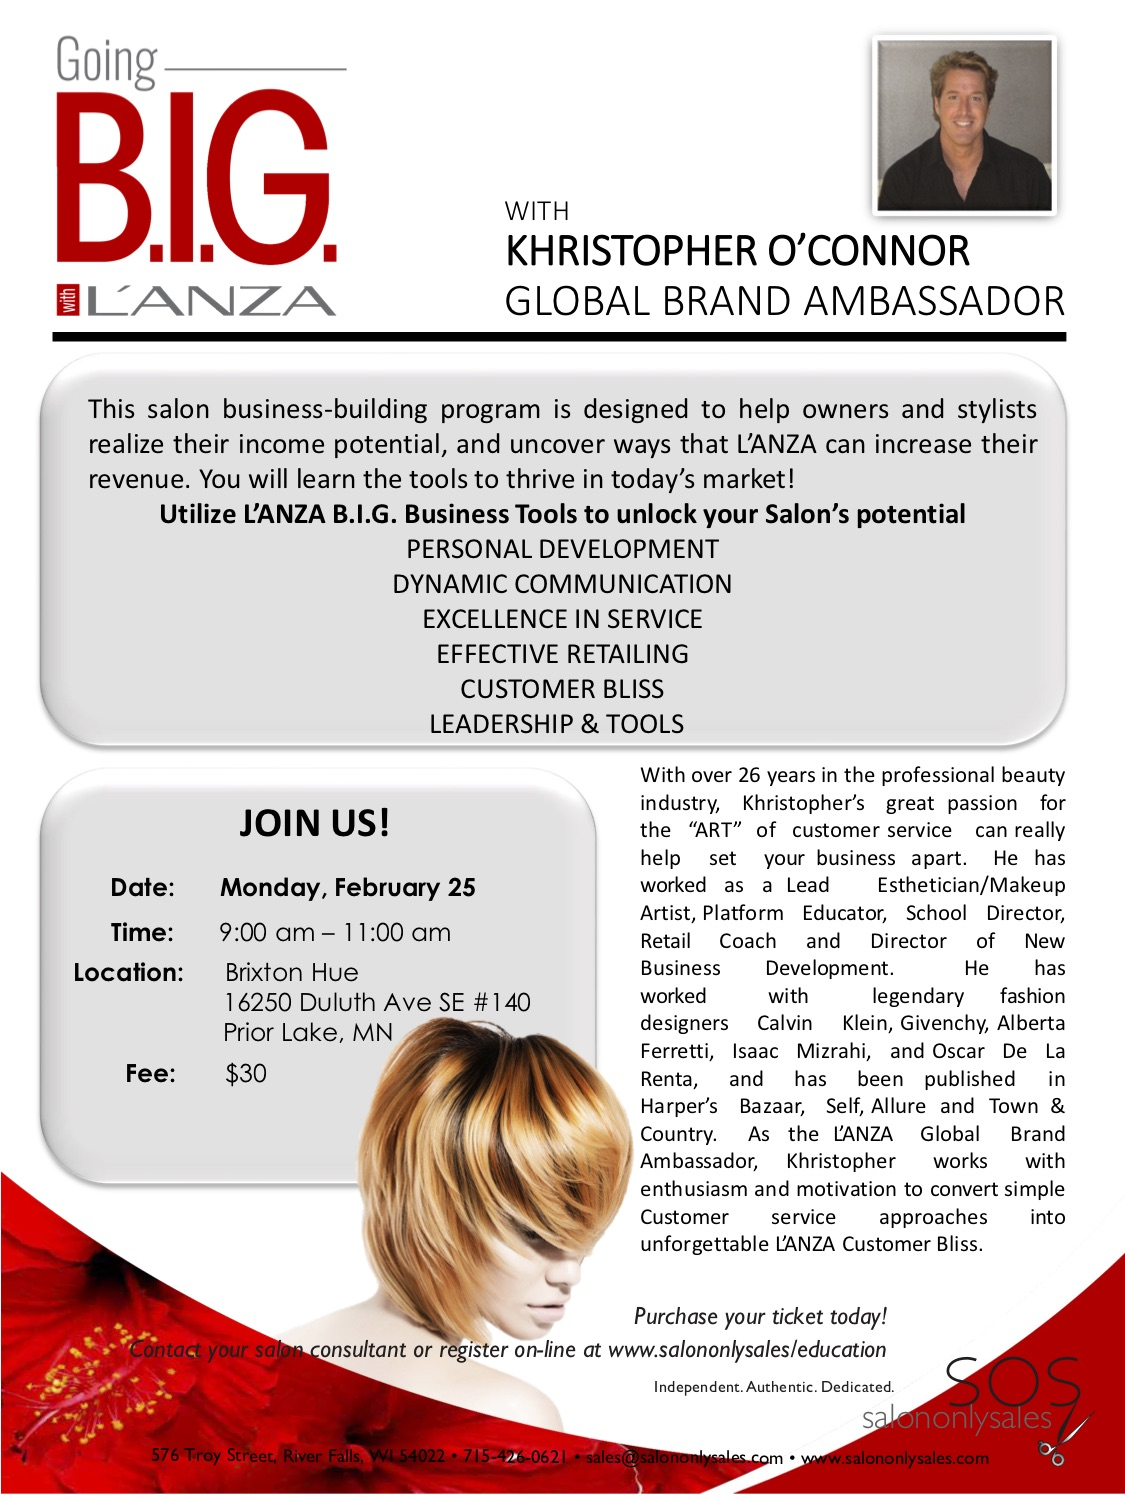 Lanza Going Big with Khristopher OConnor 190226am.jpg